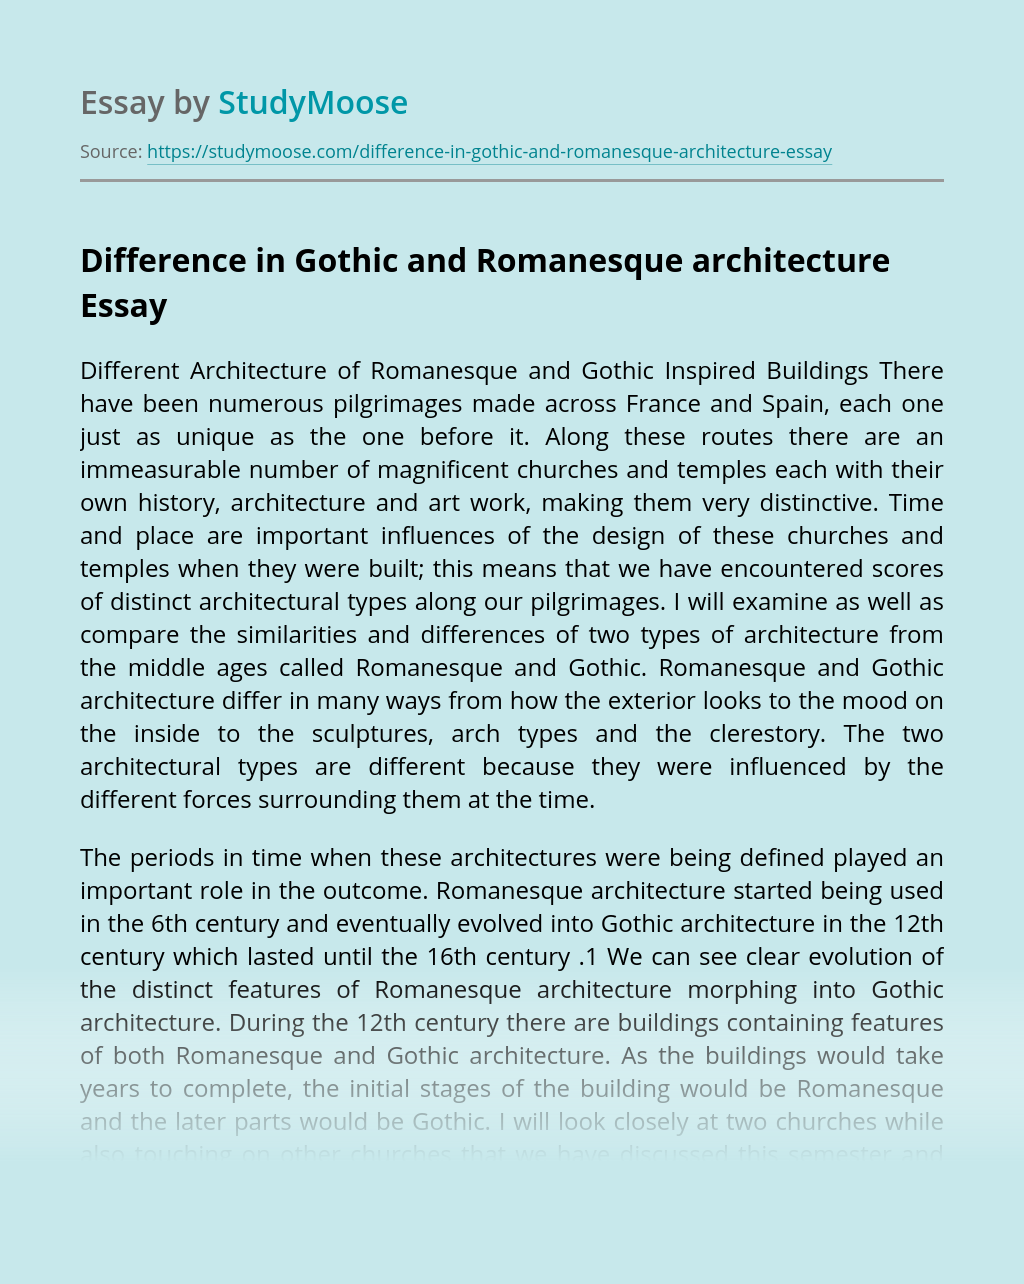 Difference in Gothic and Romanesque architecture